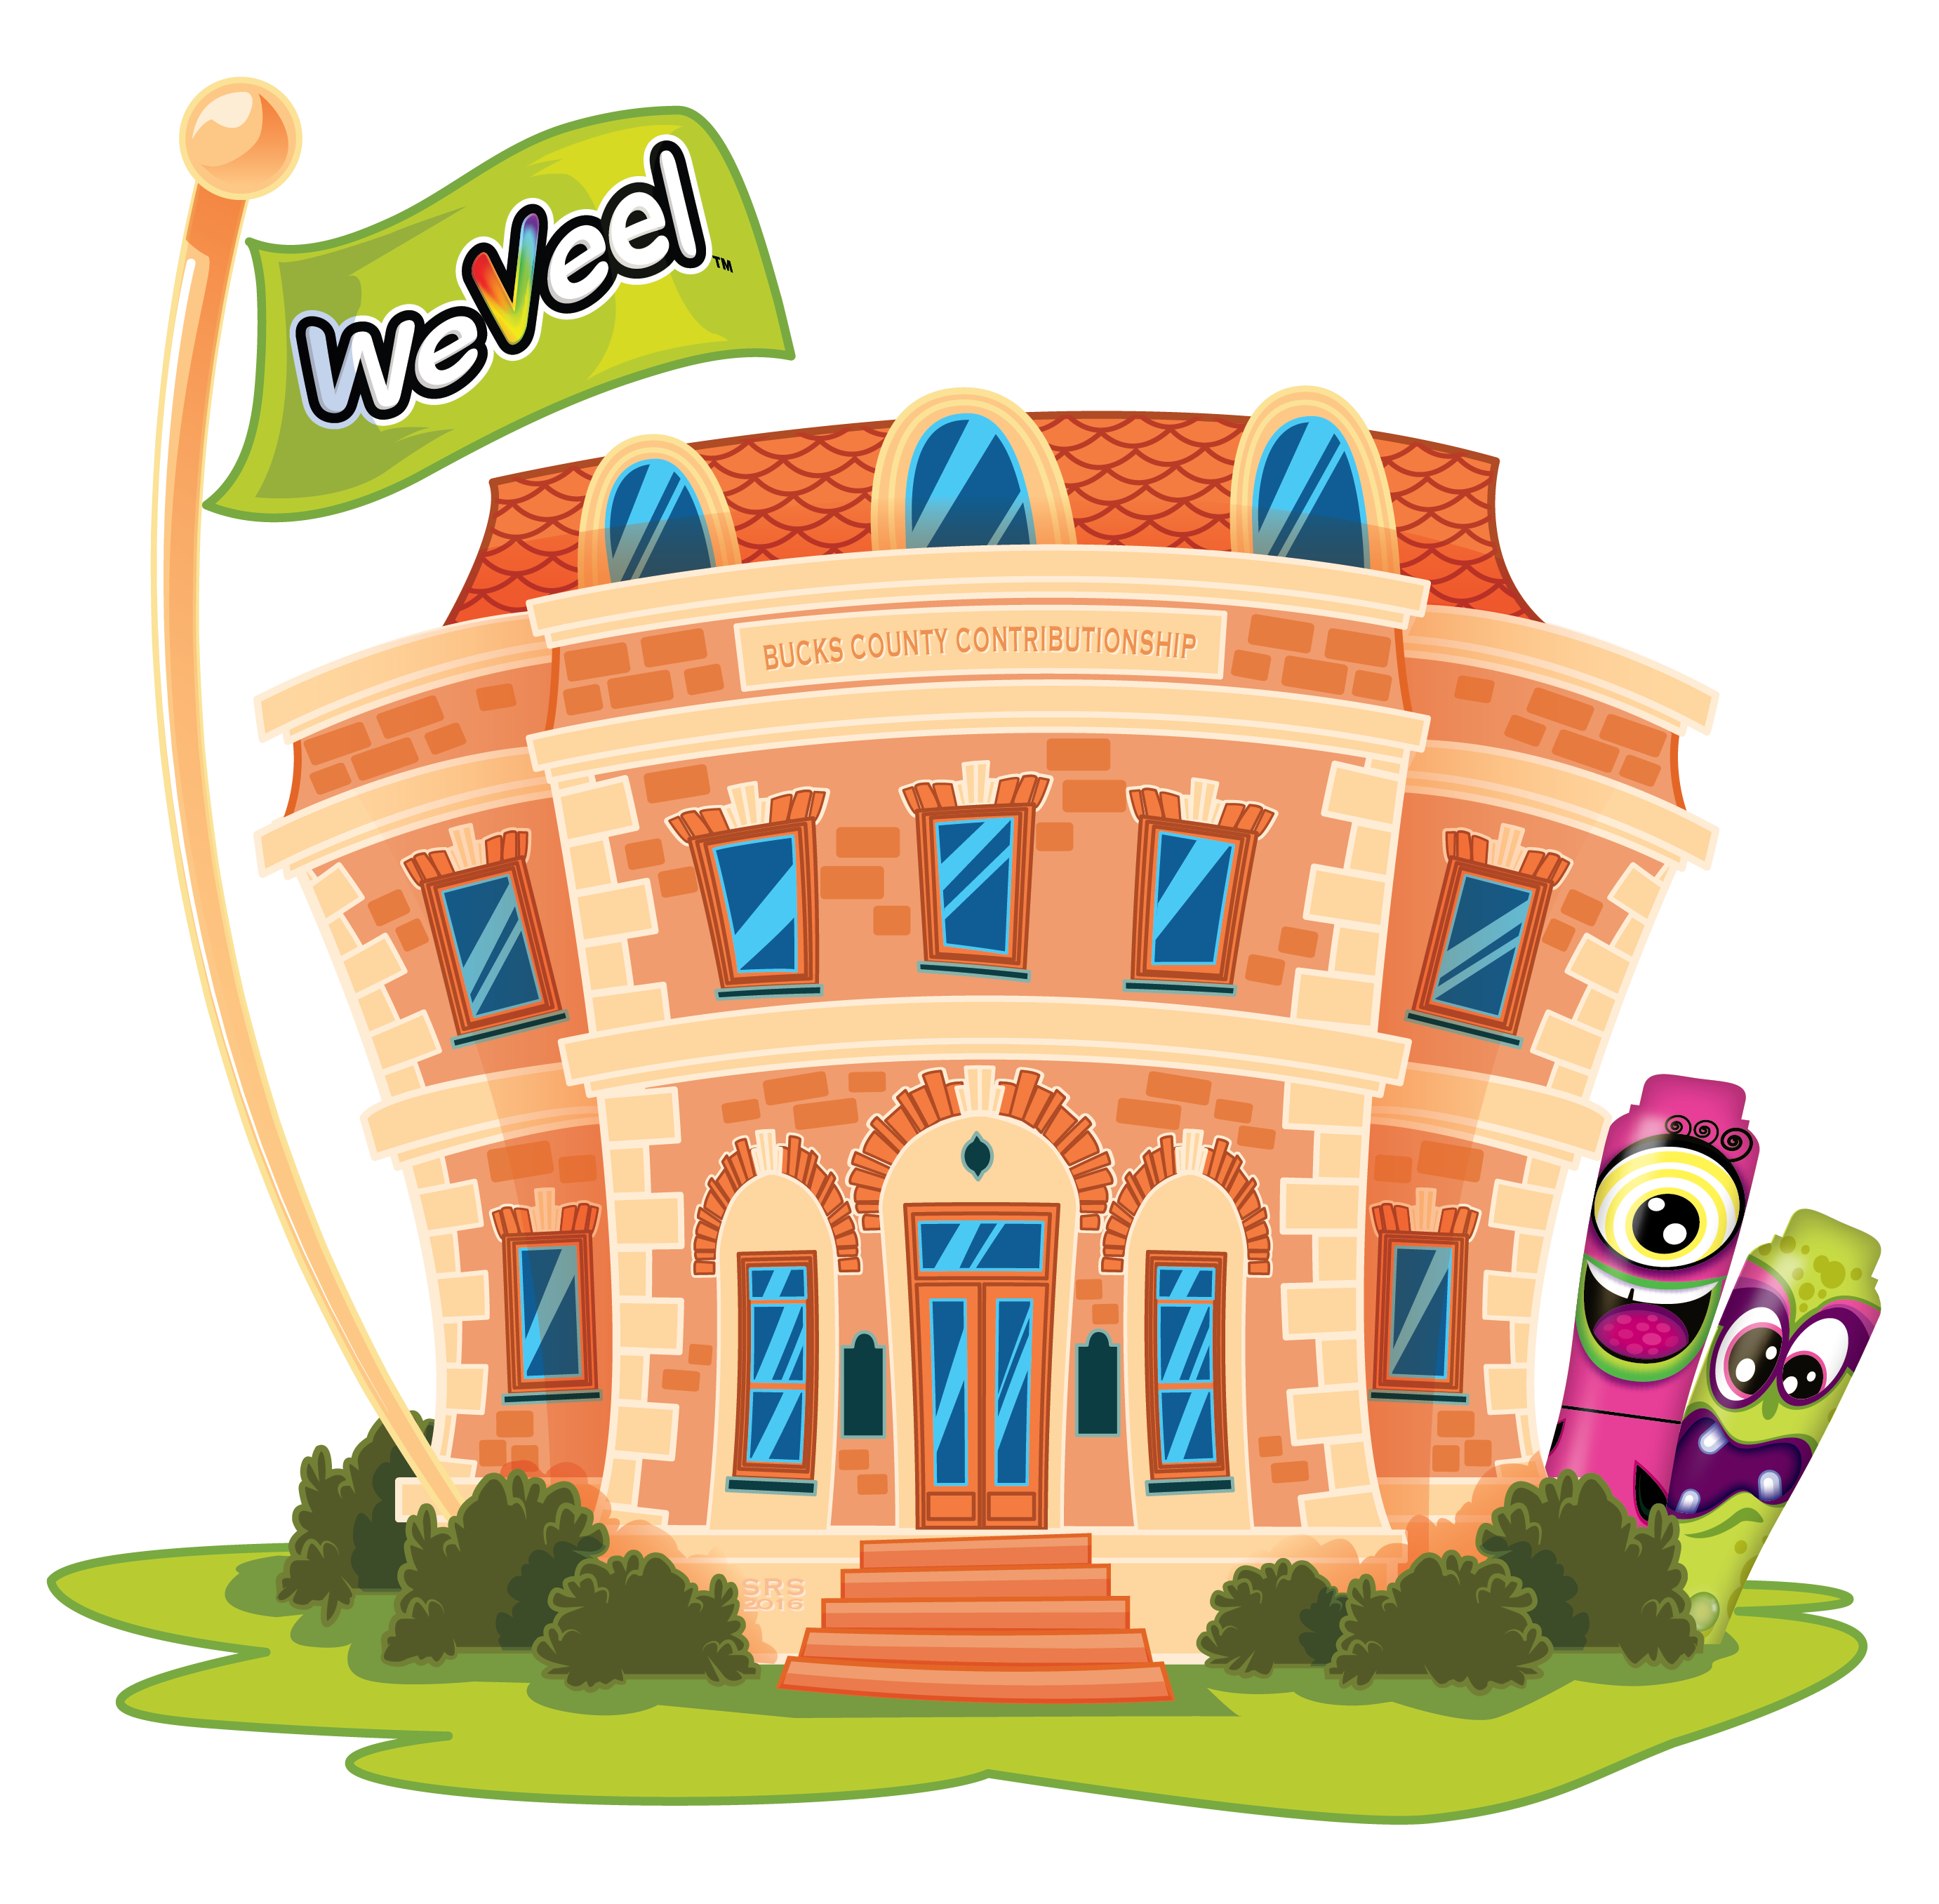 -bouncy-castle-building-01.png width=500; height=500